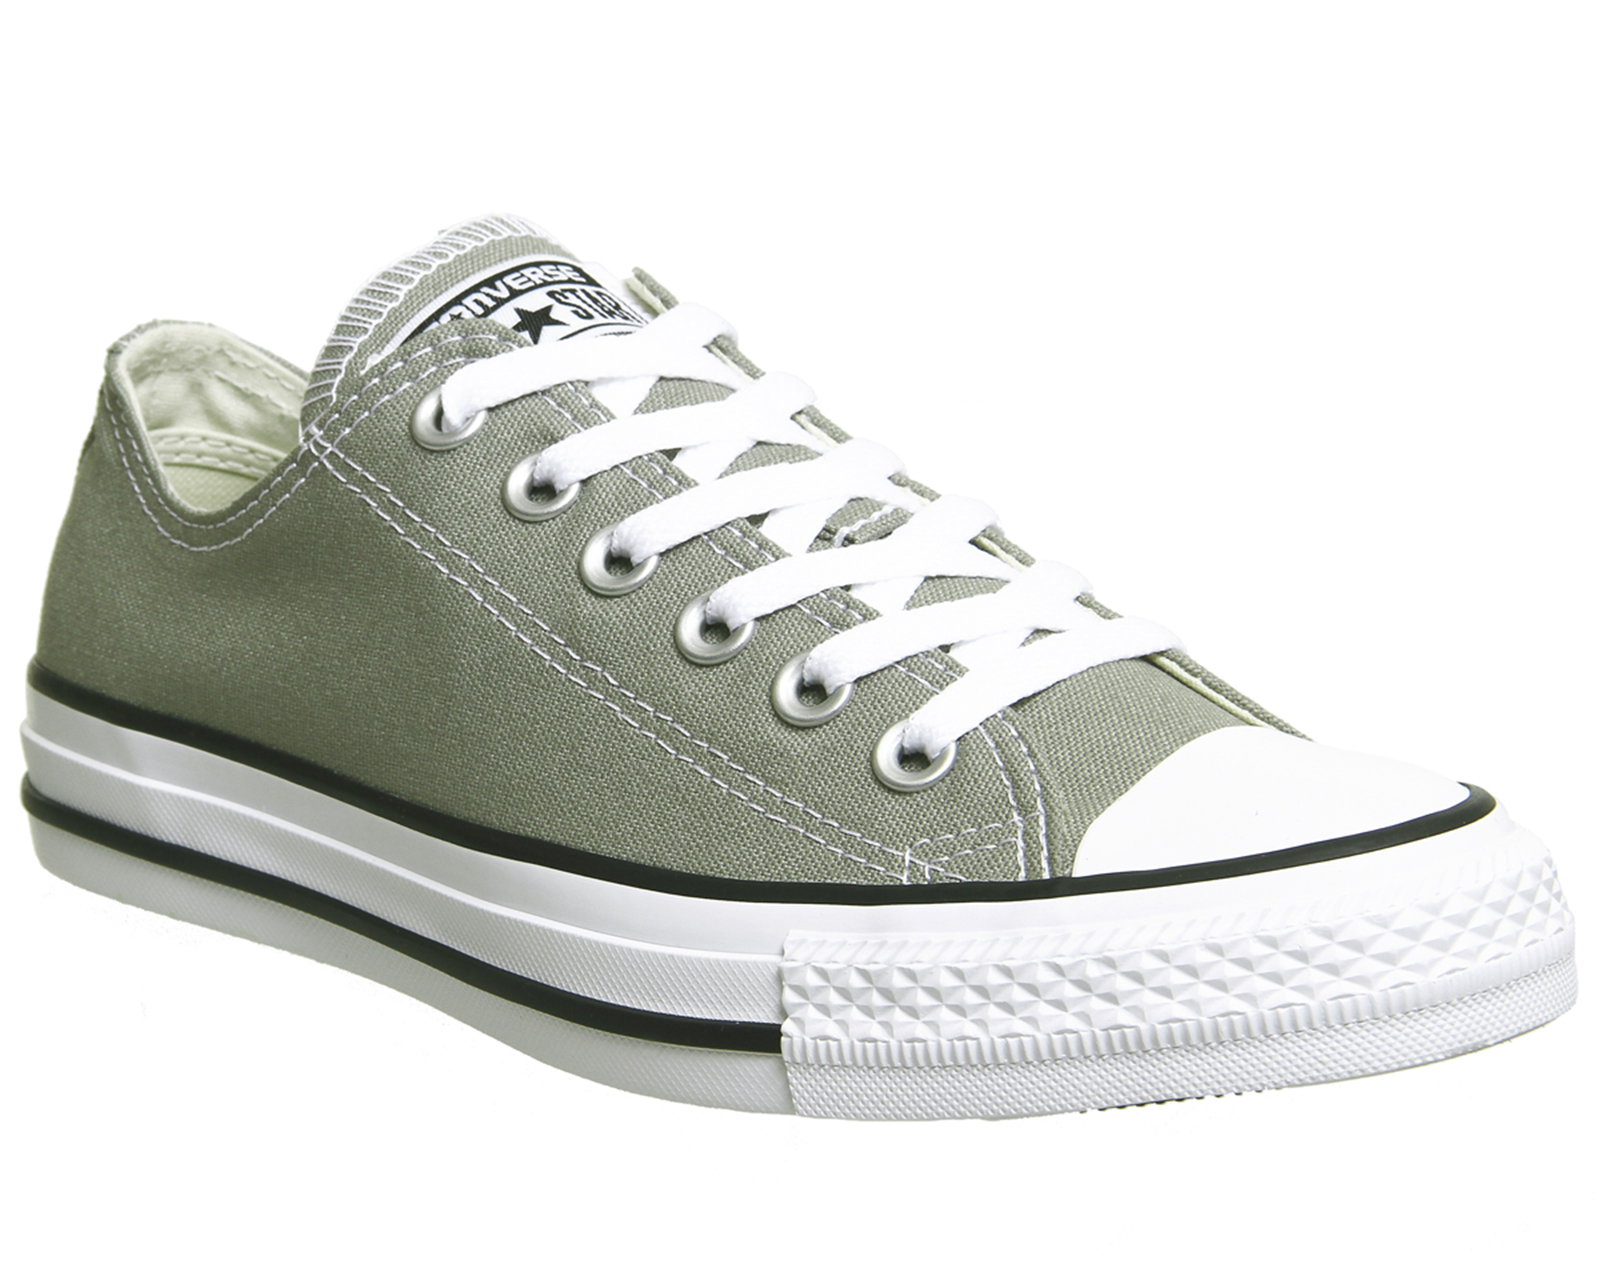 eca561bc224e8b Sentinel Mens Converse Converse All Star Low Dark Stucco Trainers Shoes